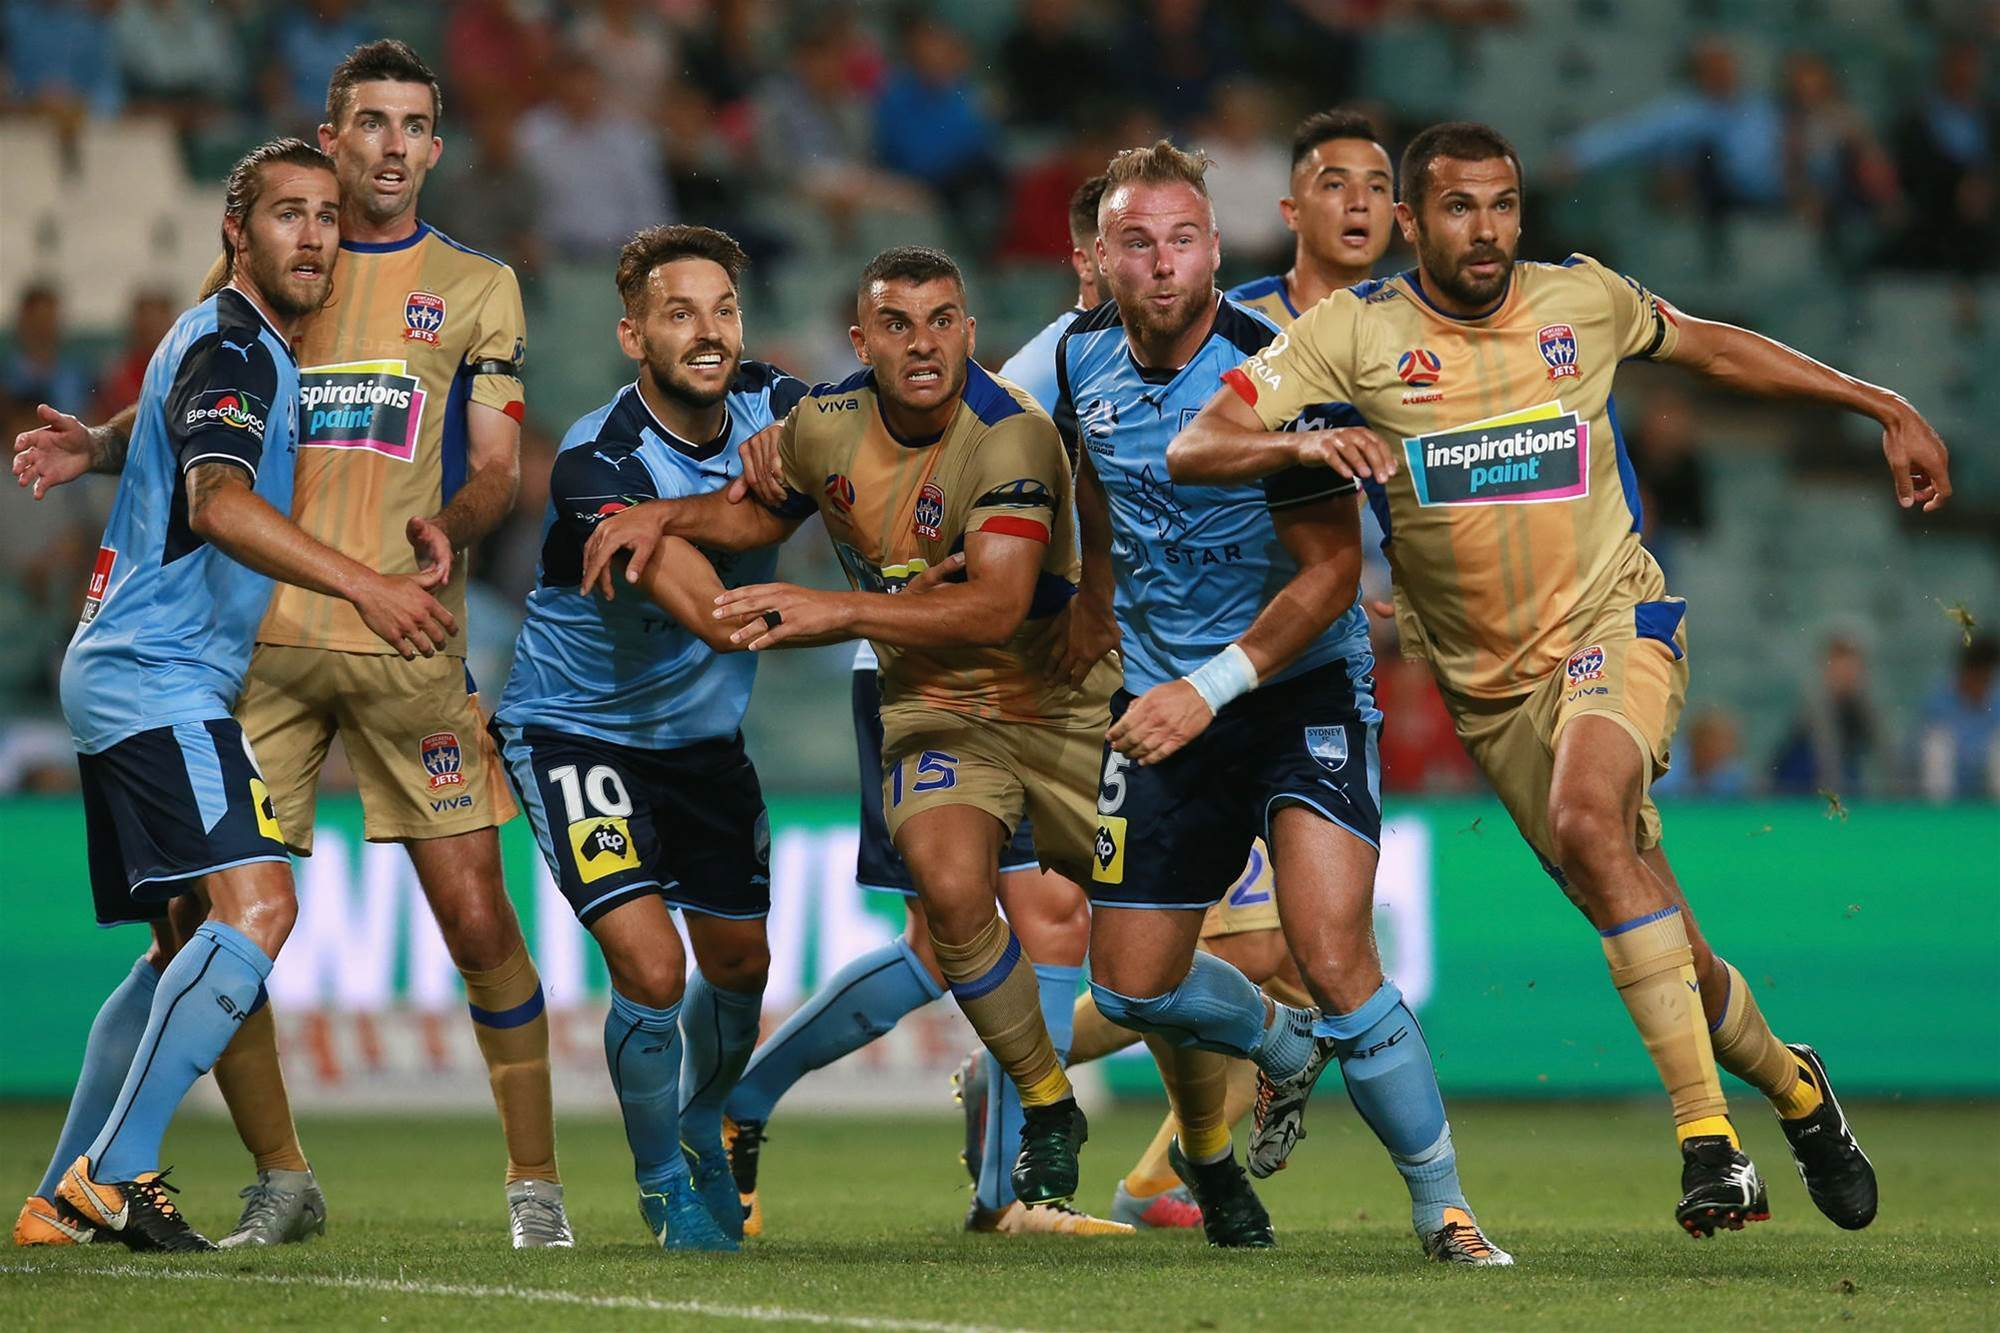 A-League Round 7 pic special